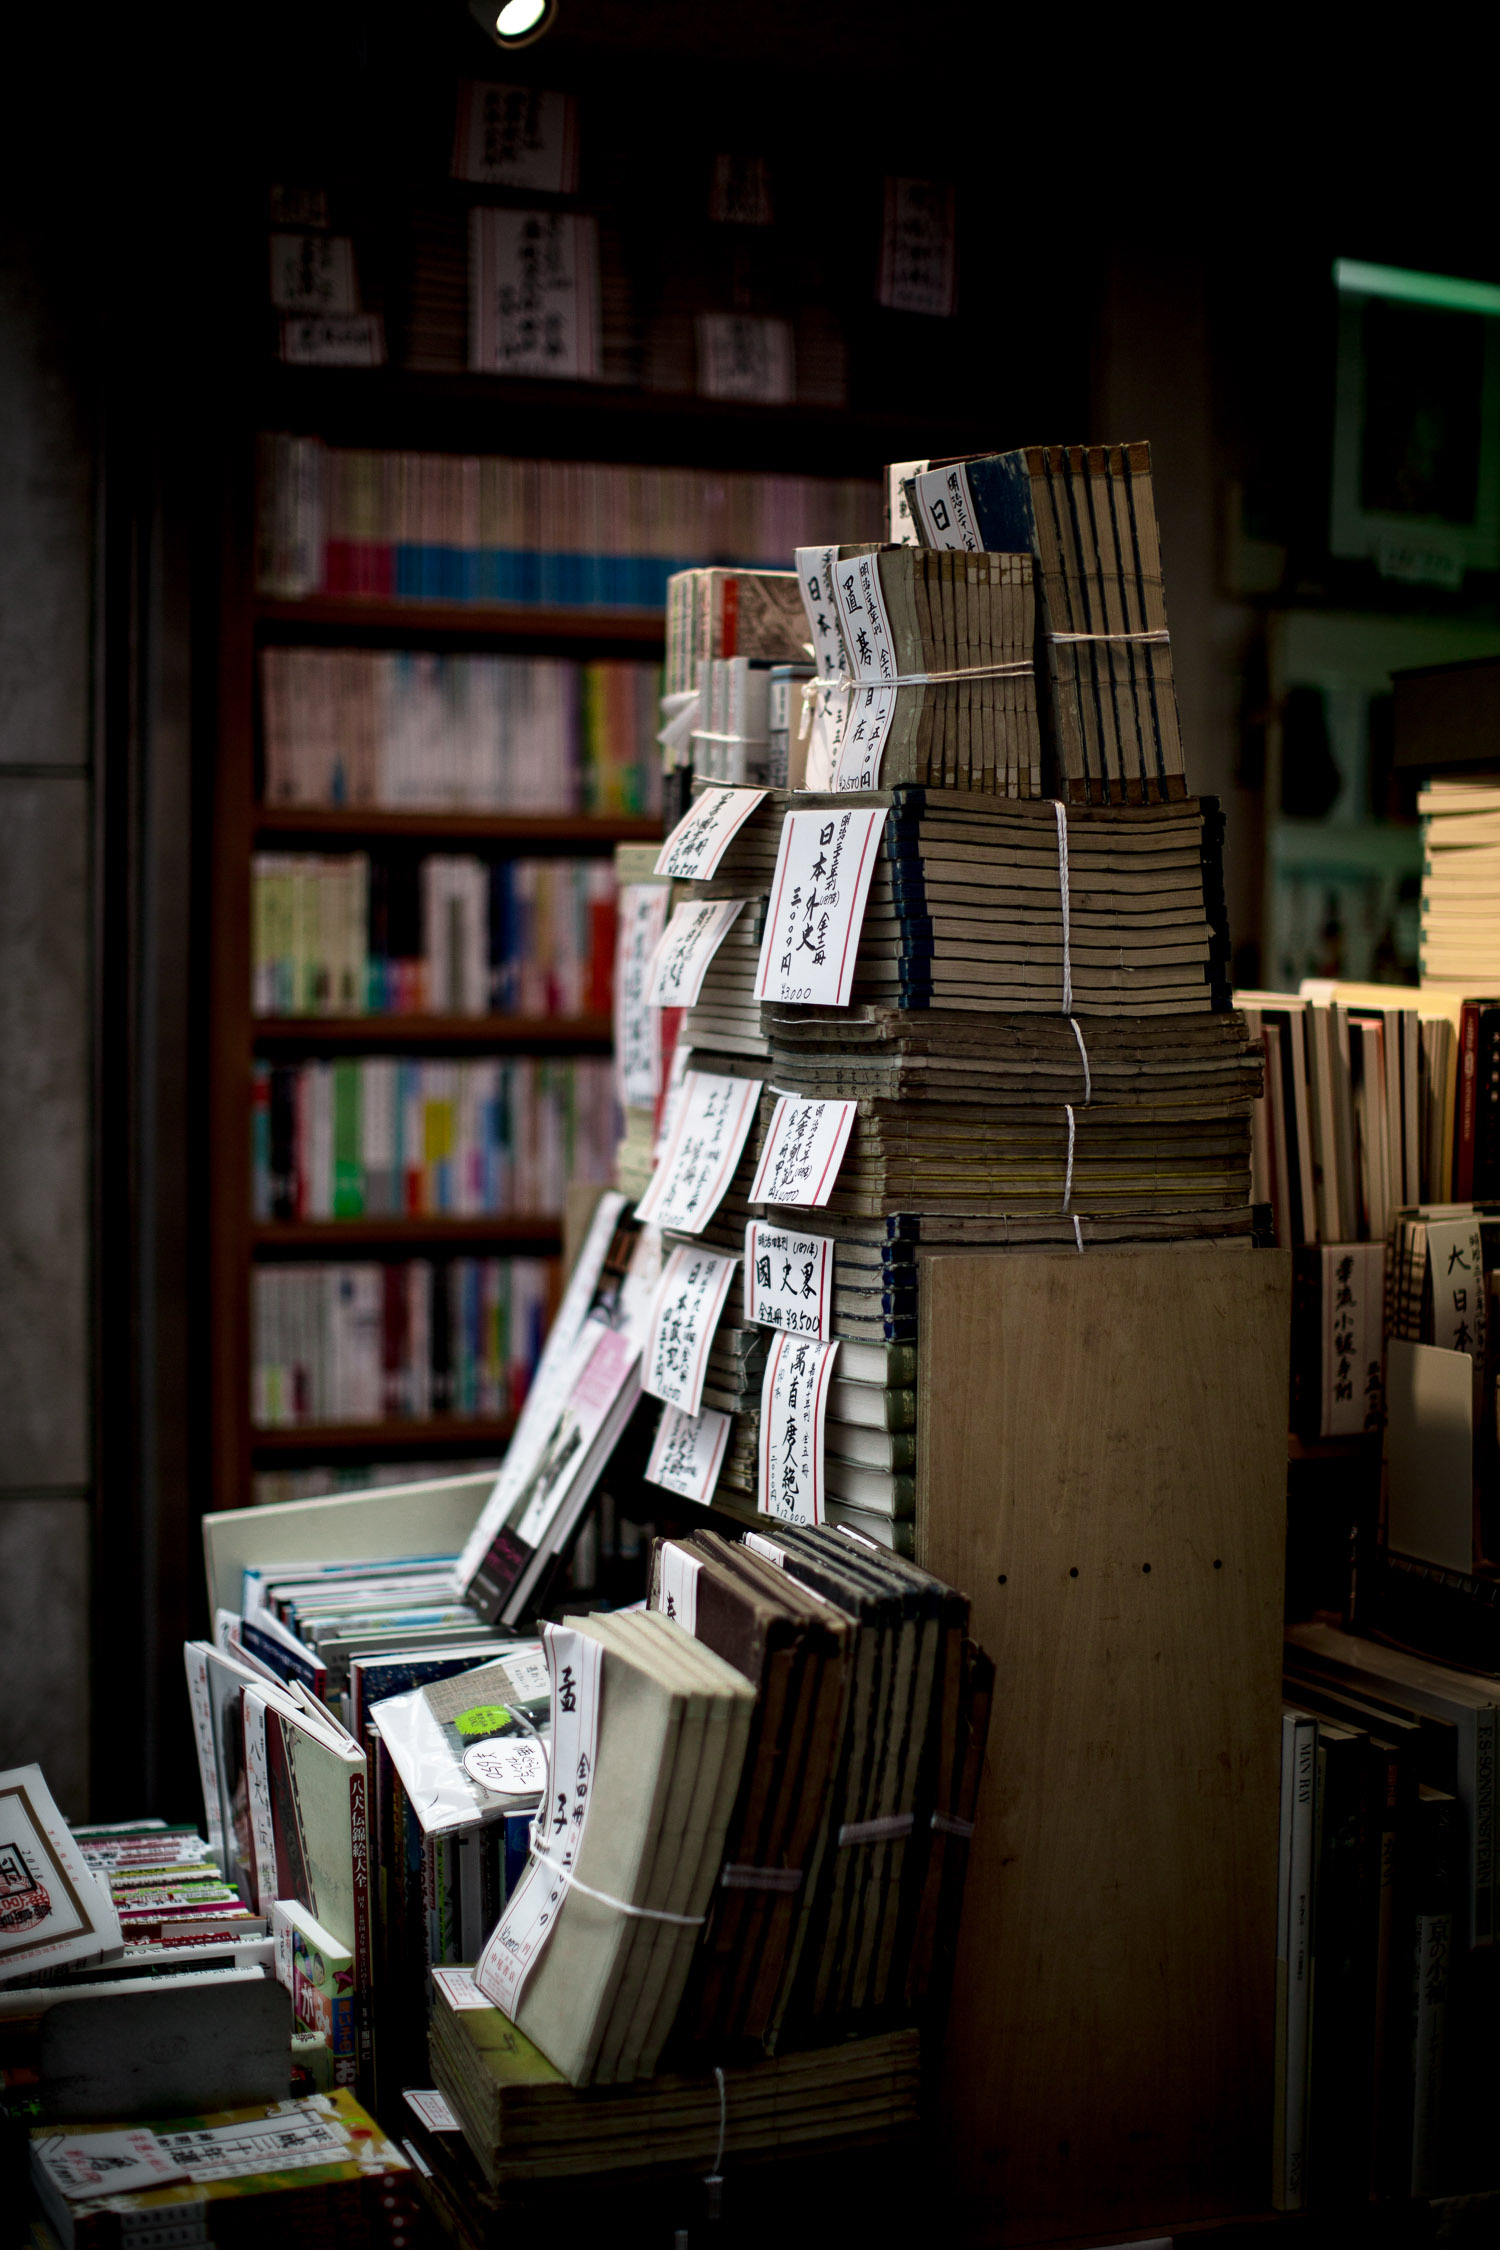 The focus of the image is on the pile of books in the forefront while the rest of books in the background is purposely out of focus.